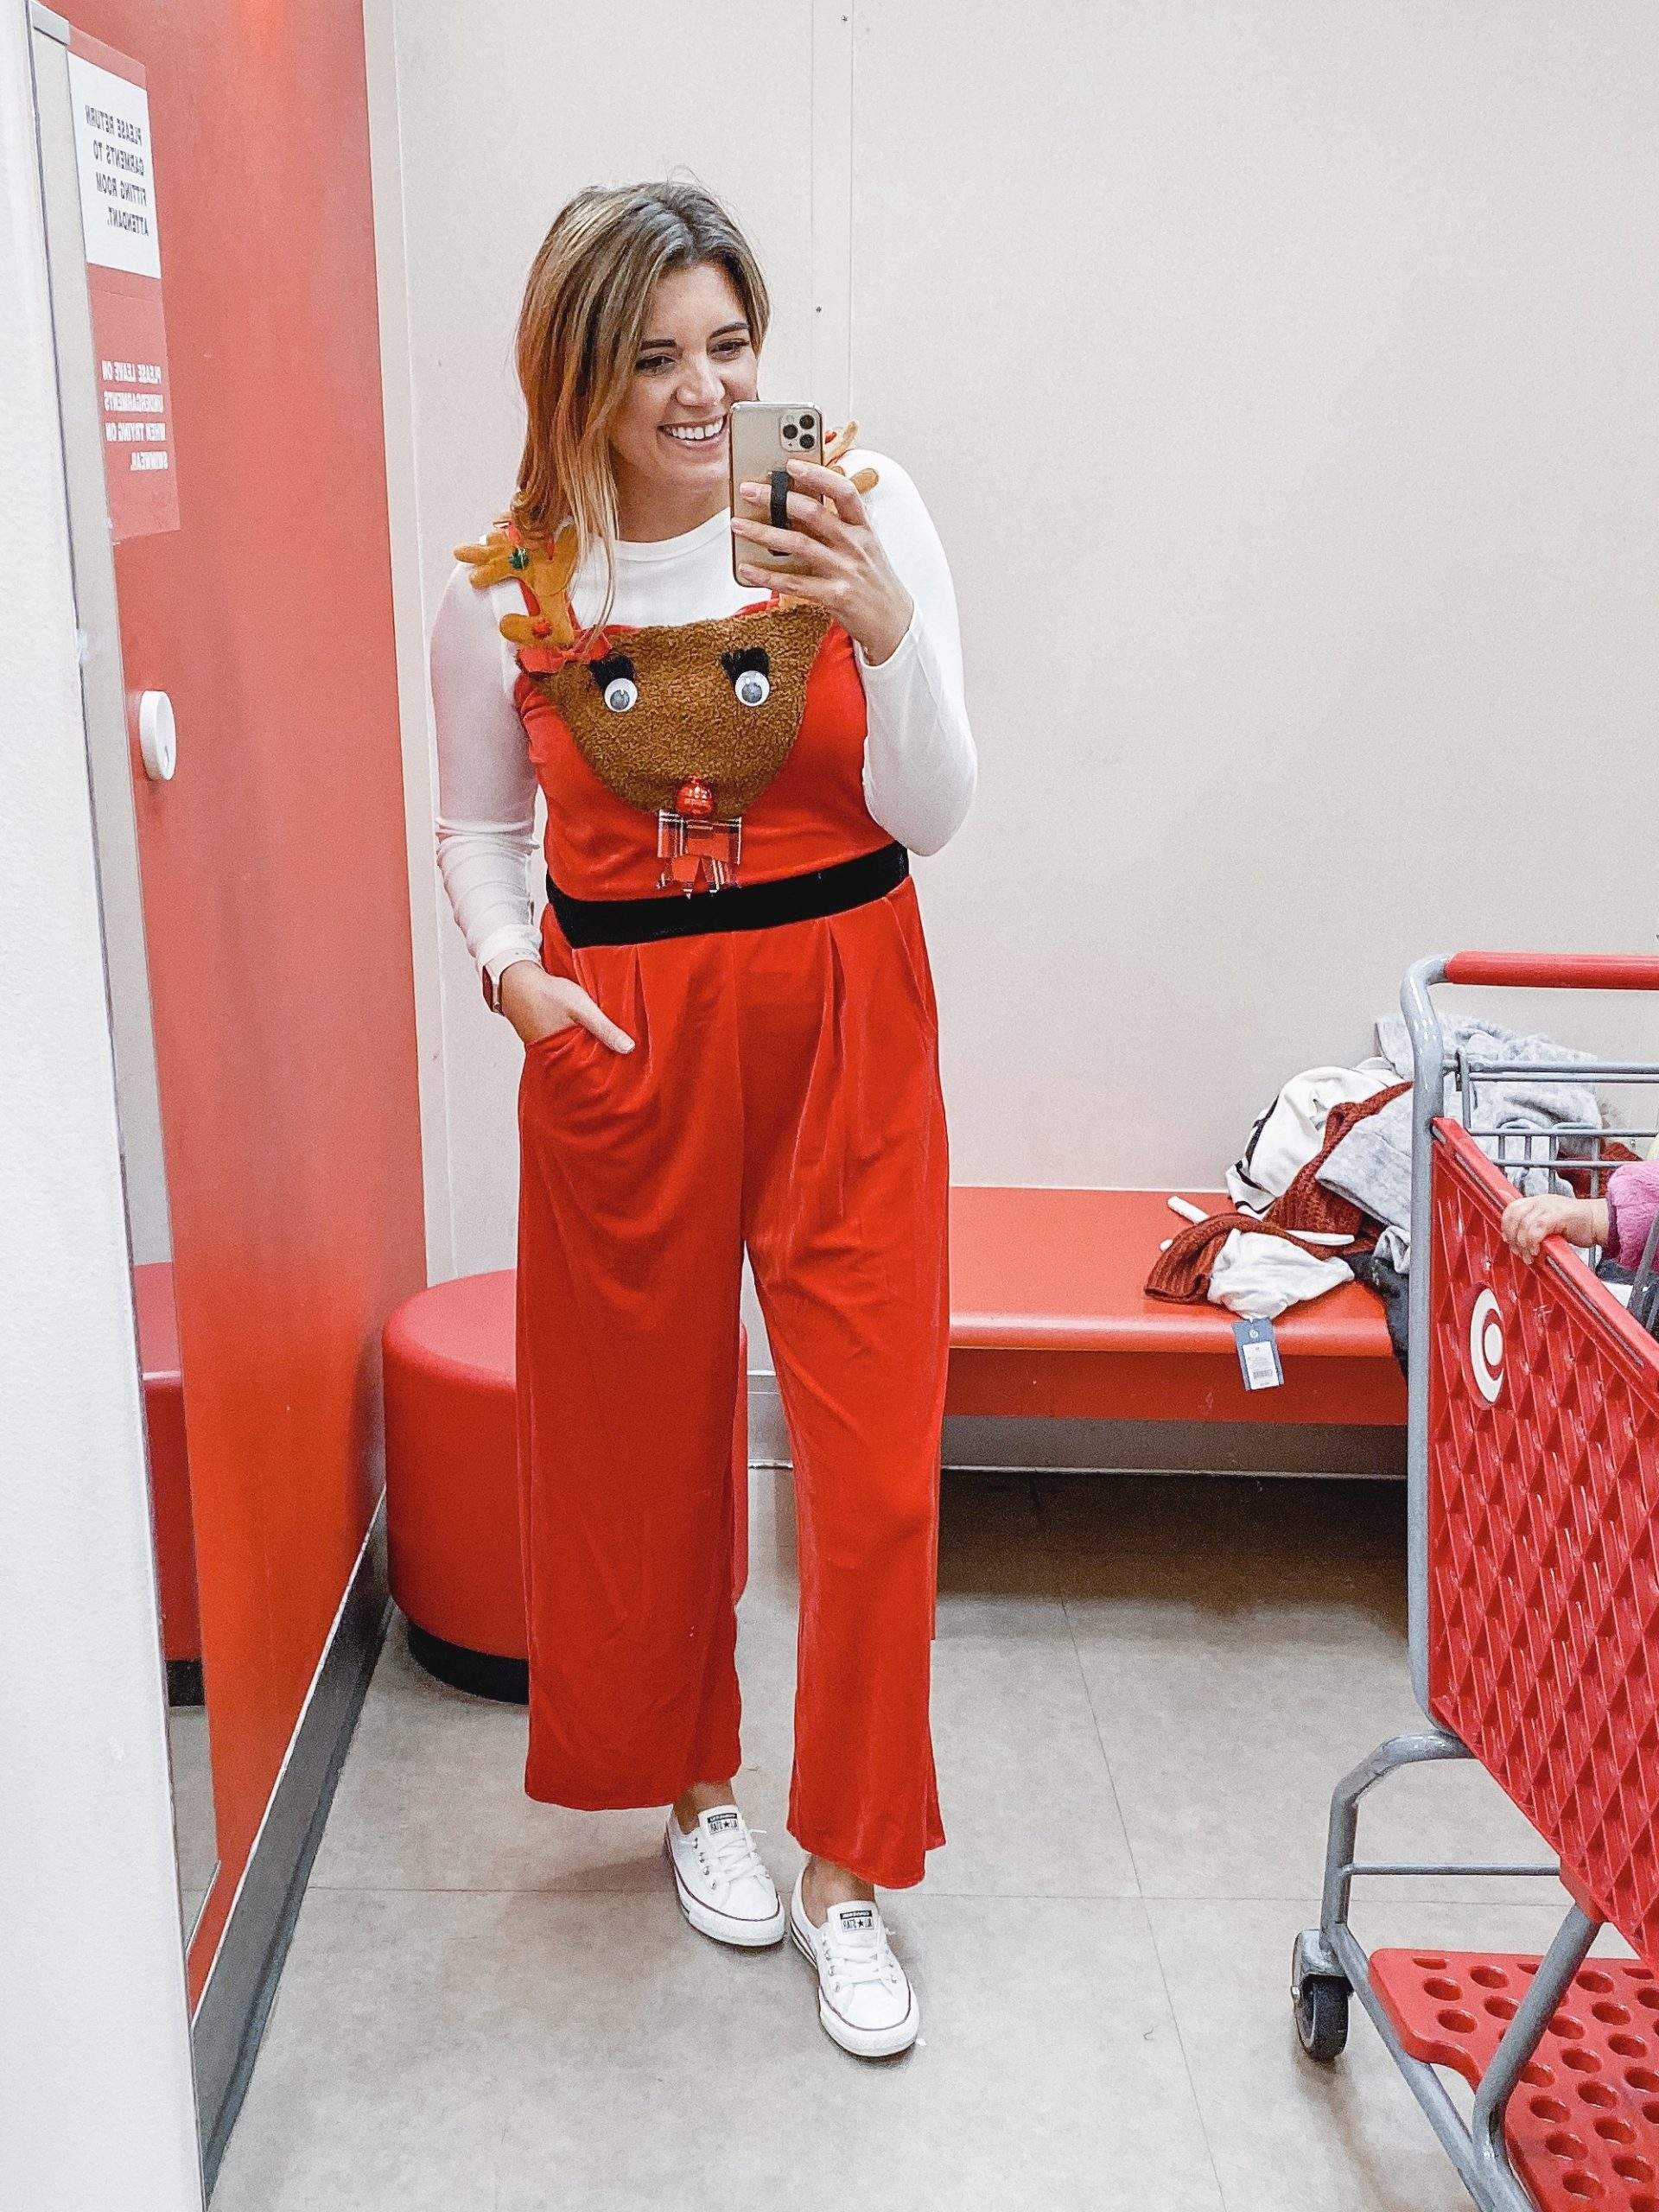 Virginia blogger, Lauren Dix, shares over ten of the cutest Target women's clothes in her winter Target try on!